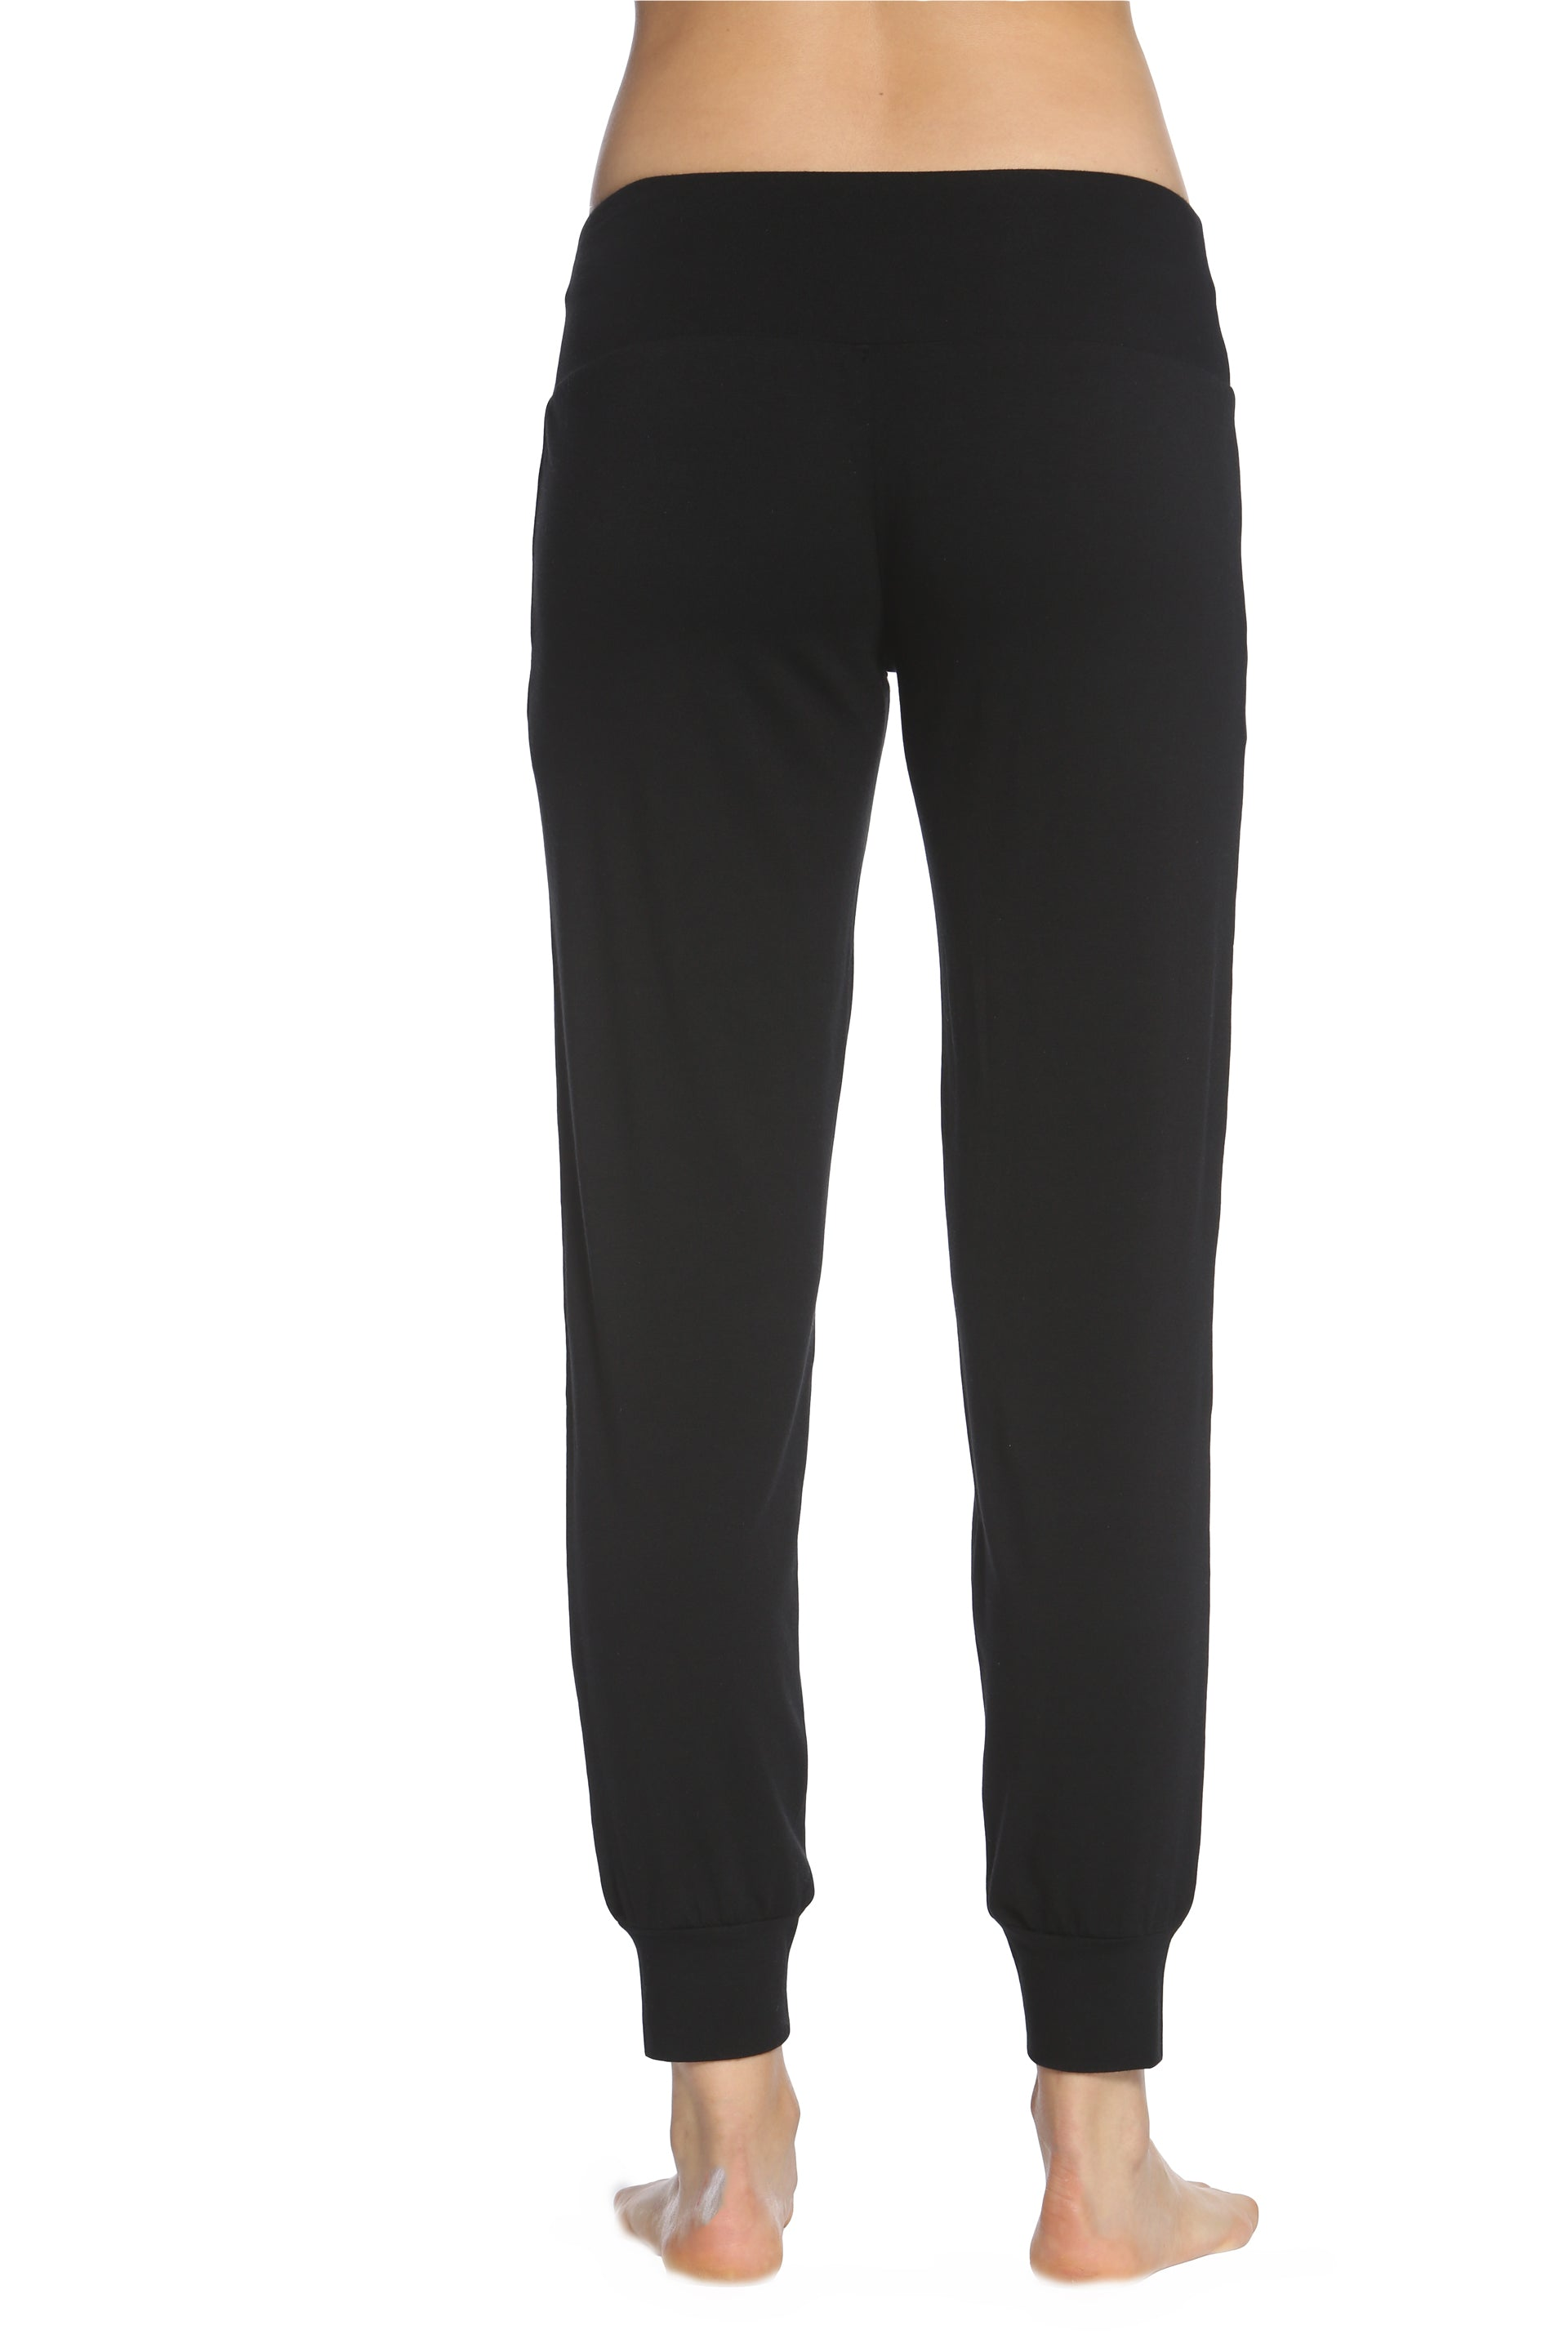 Laguna Joggers - Basic Colors